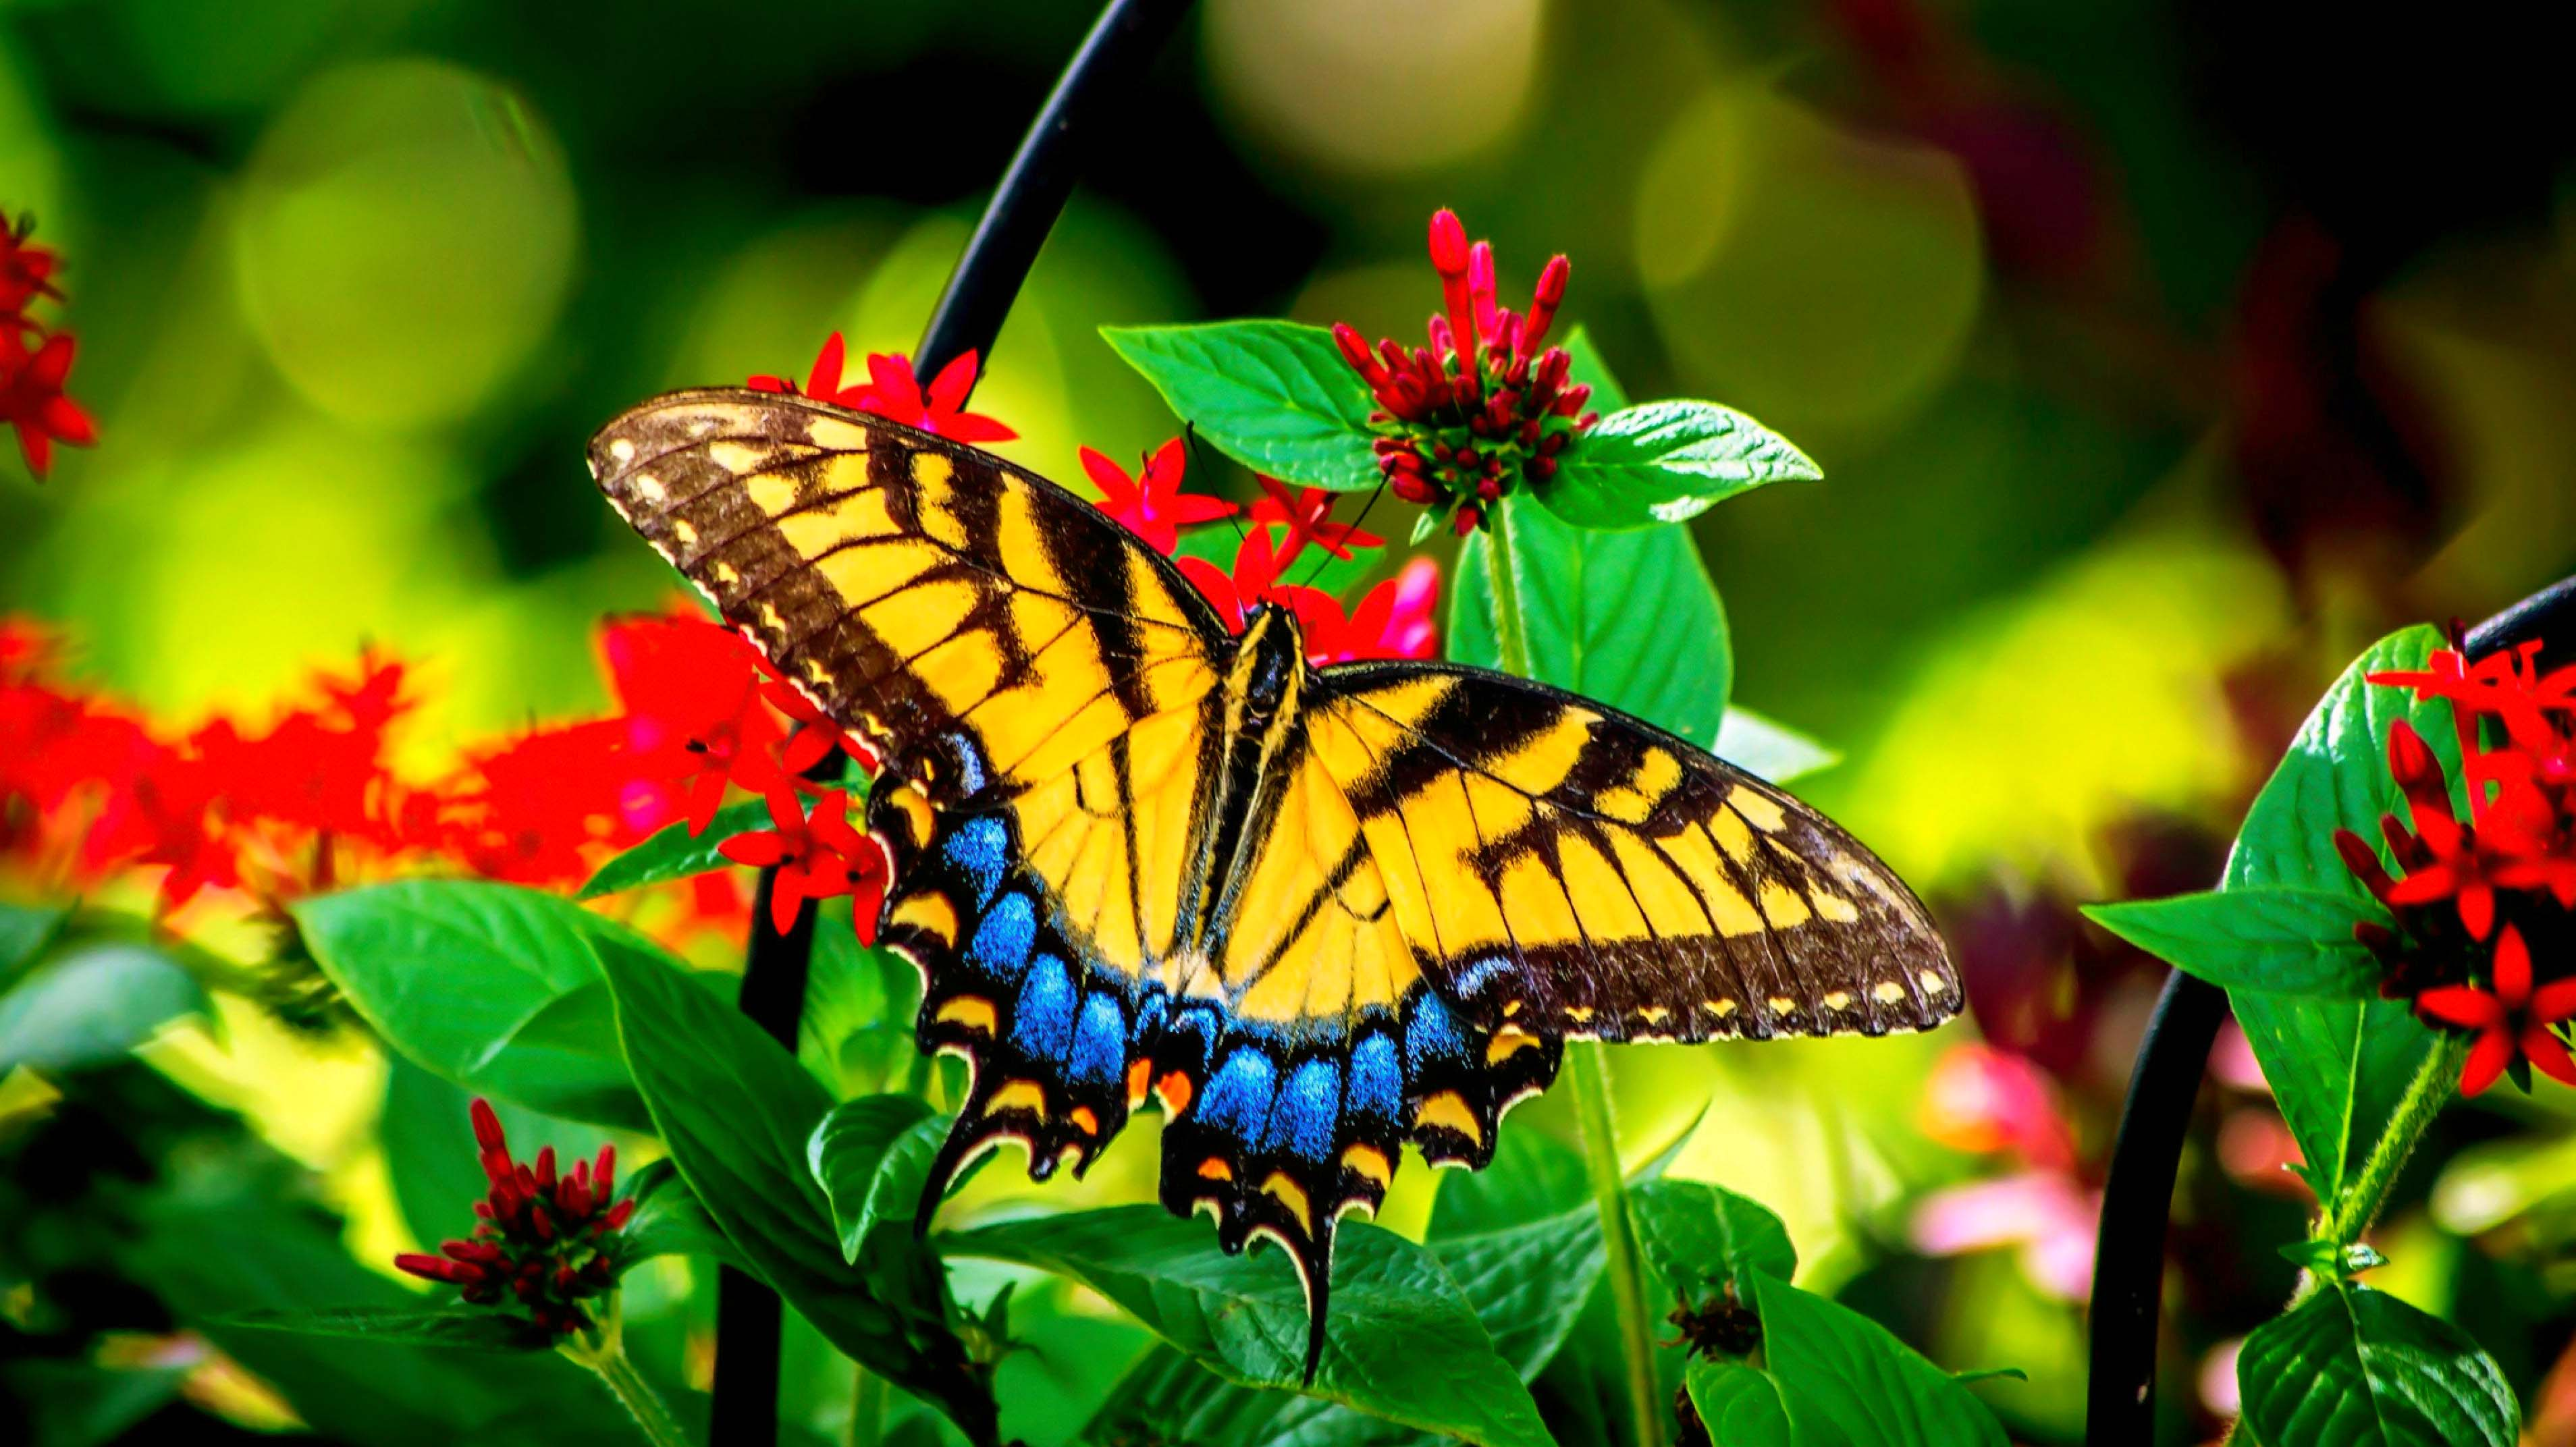 Colorful Butterfly On Flower , HD Wallpaper & Backgrounds